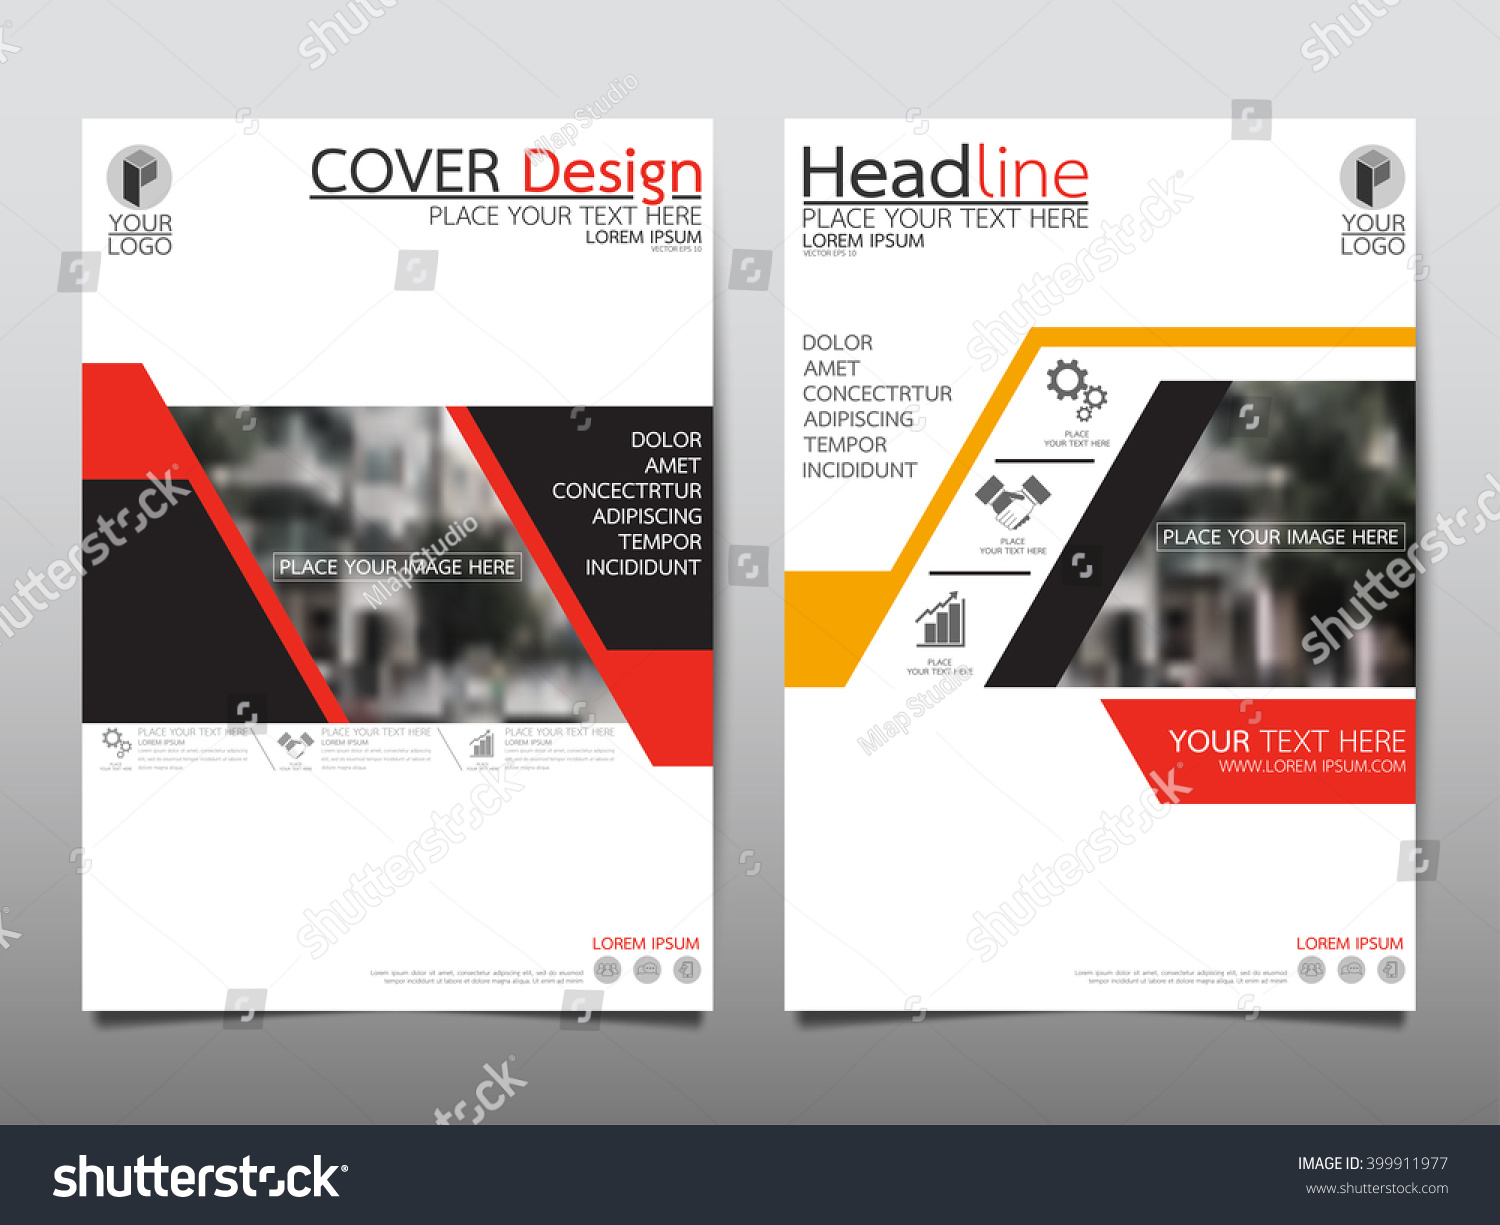 red annual report brochure flyer design stock vector  red annual report brochure flyer design template vector leaflet cover presentation abstract flat background